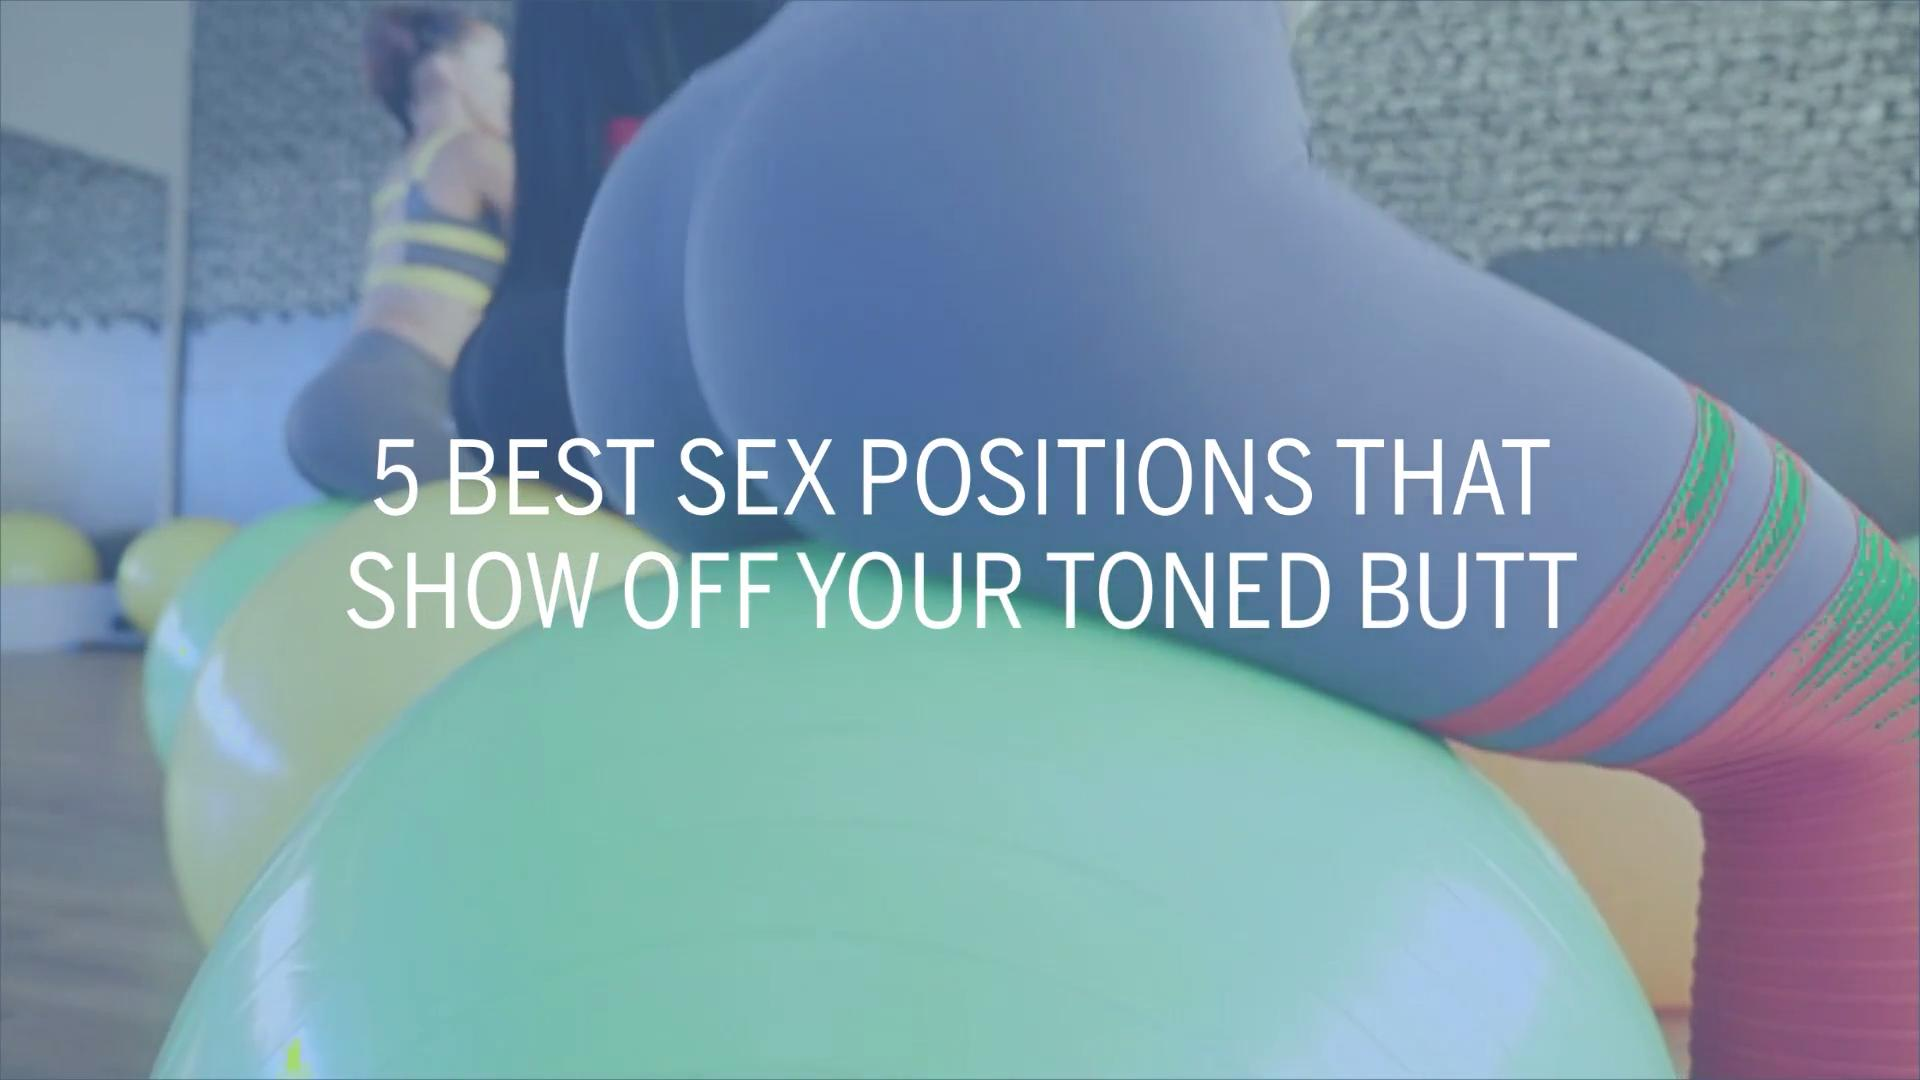 5 Best Sex Positions That Show Off Your Toned Butt